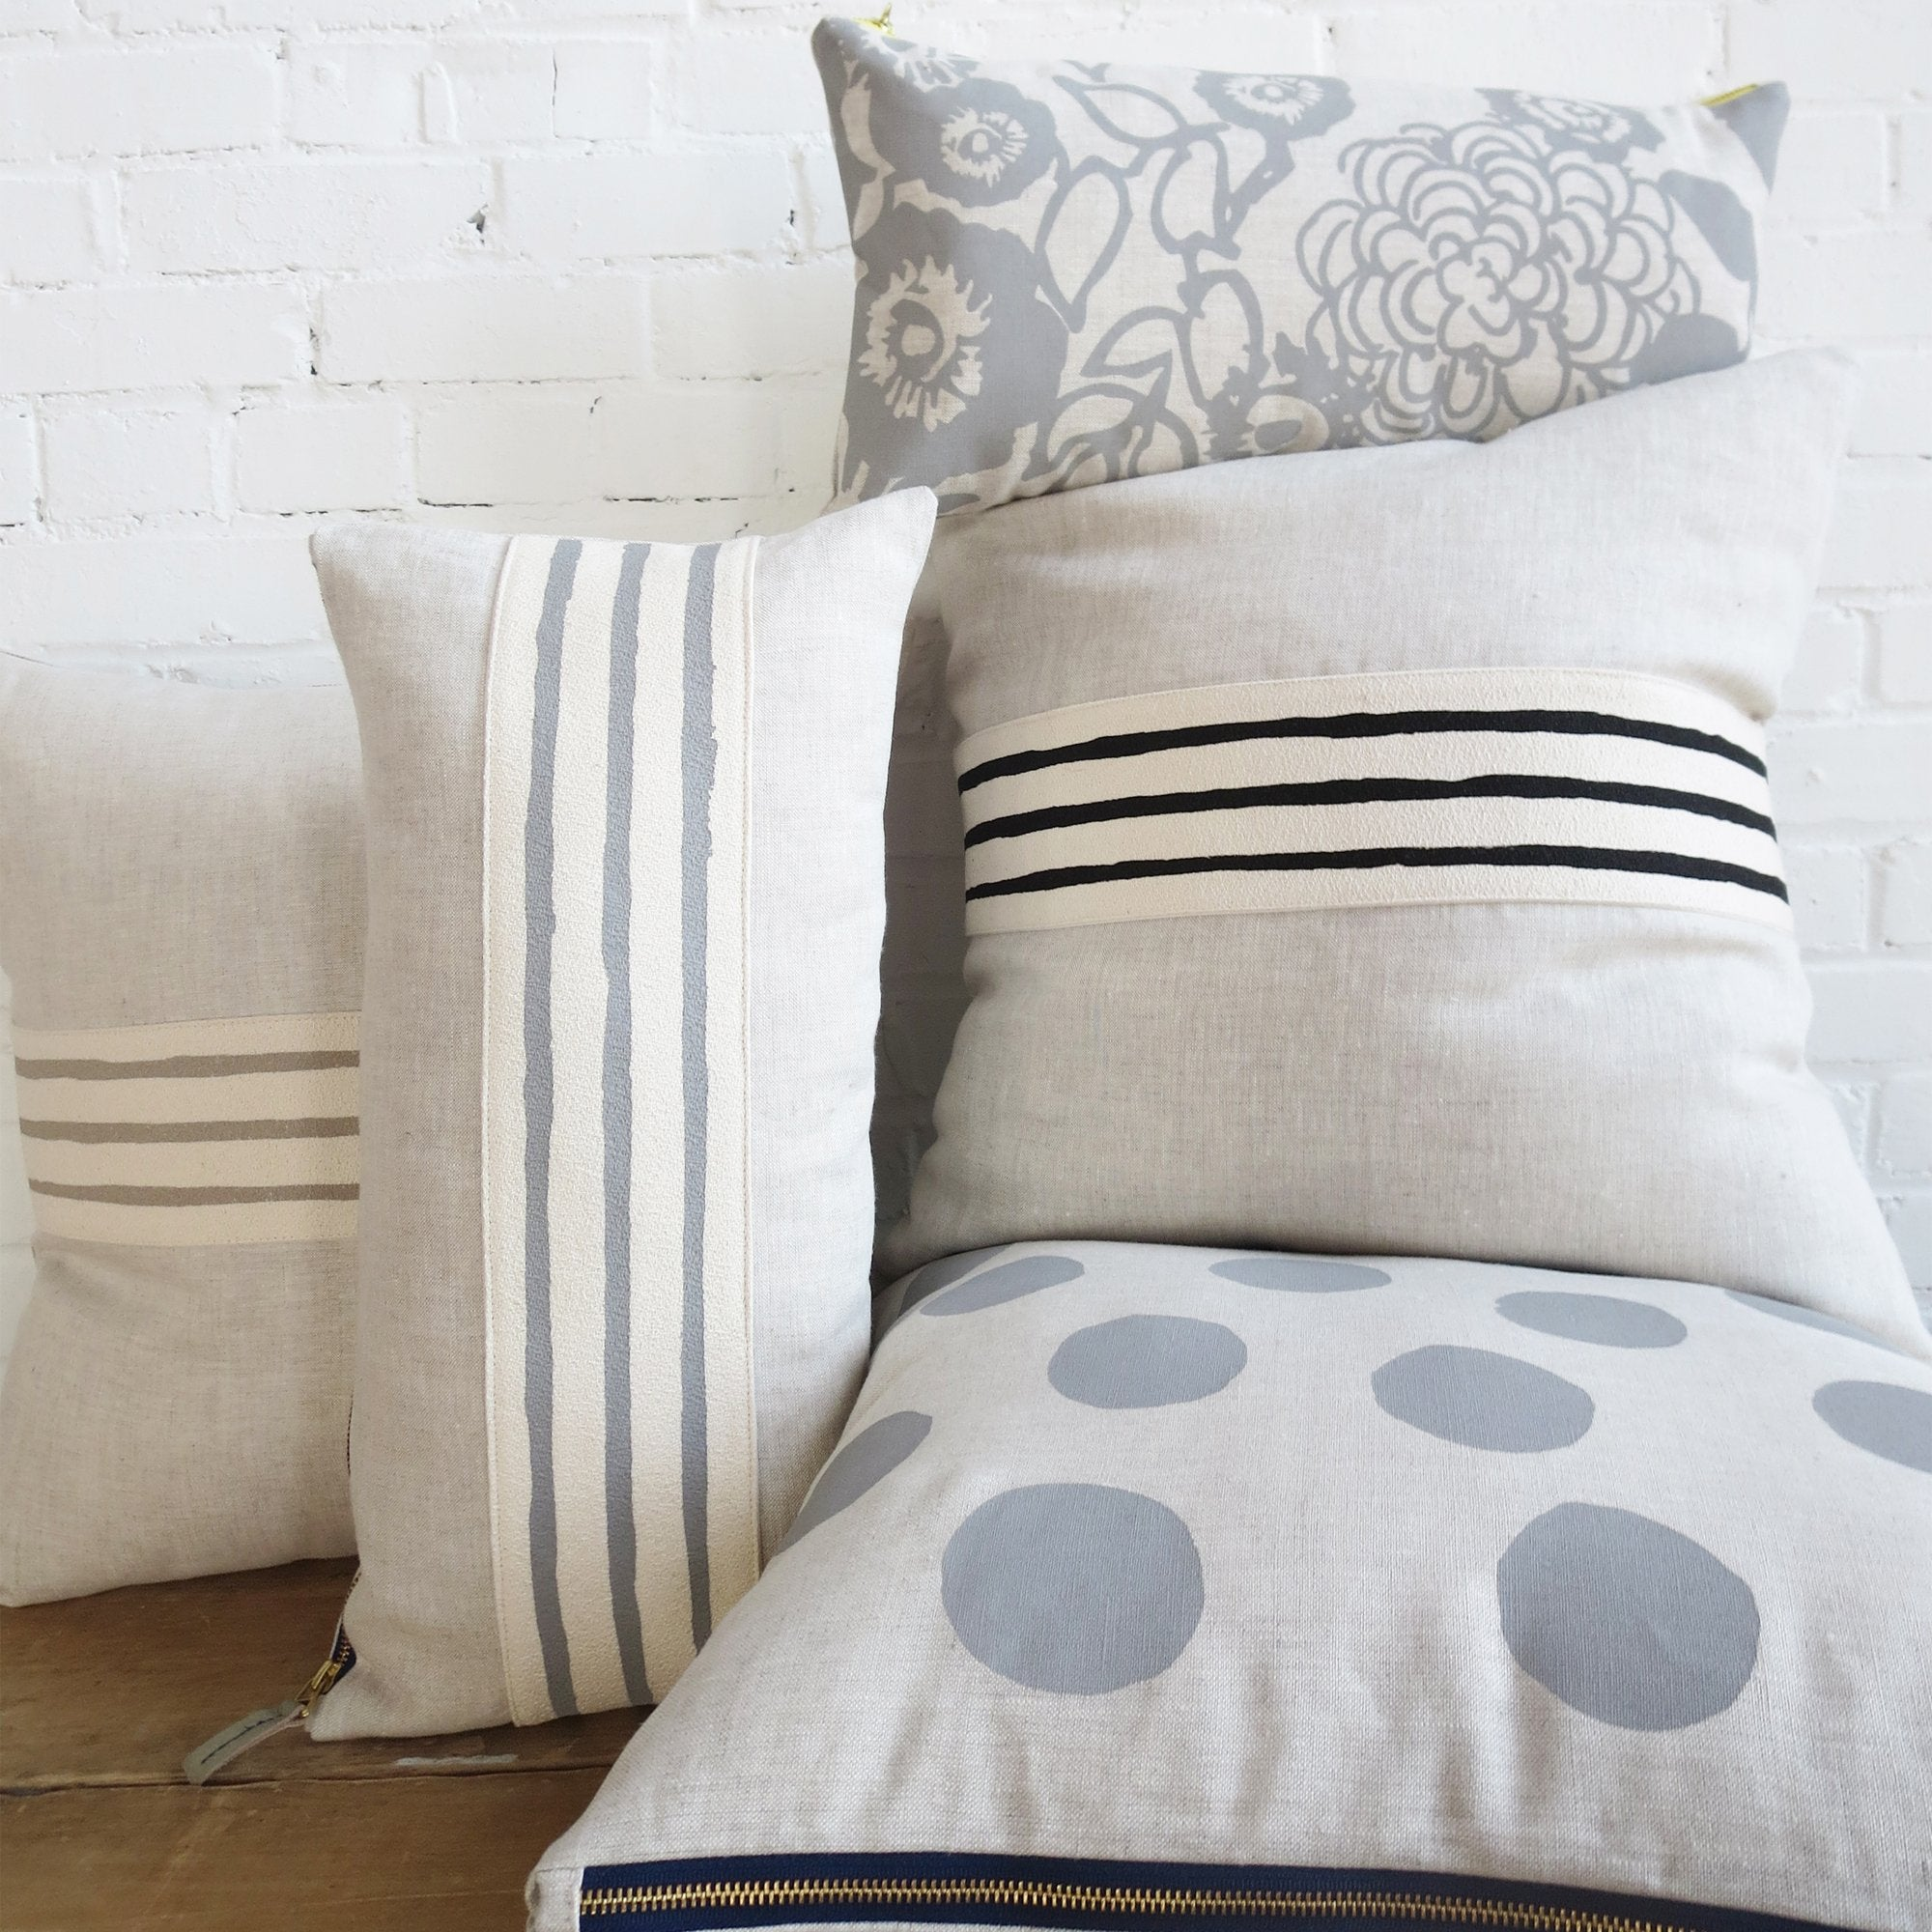 BIG DOT OATMEAL LINEN PILLOW COVER IN RAINY DAY